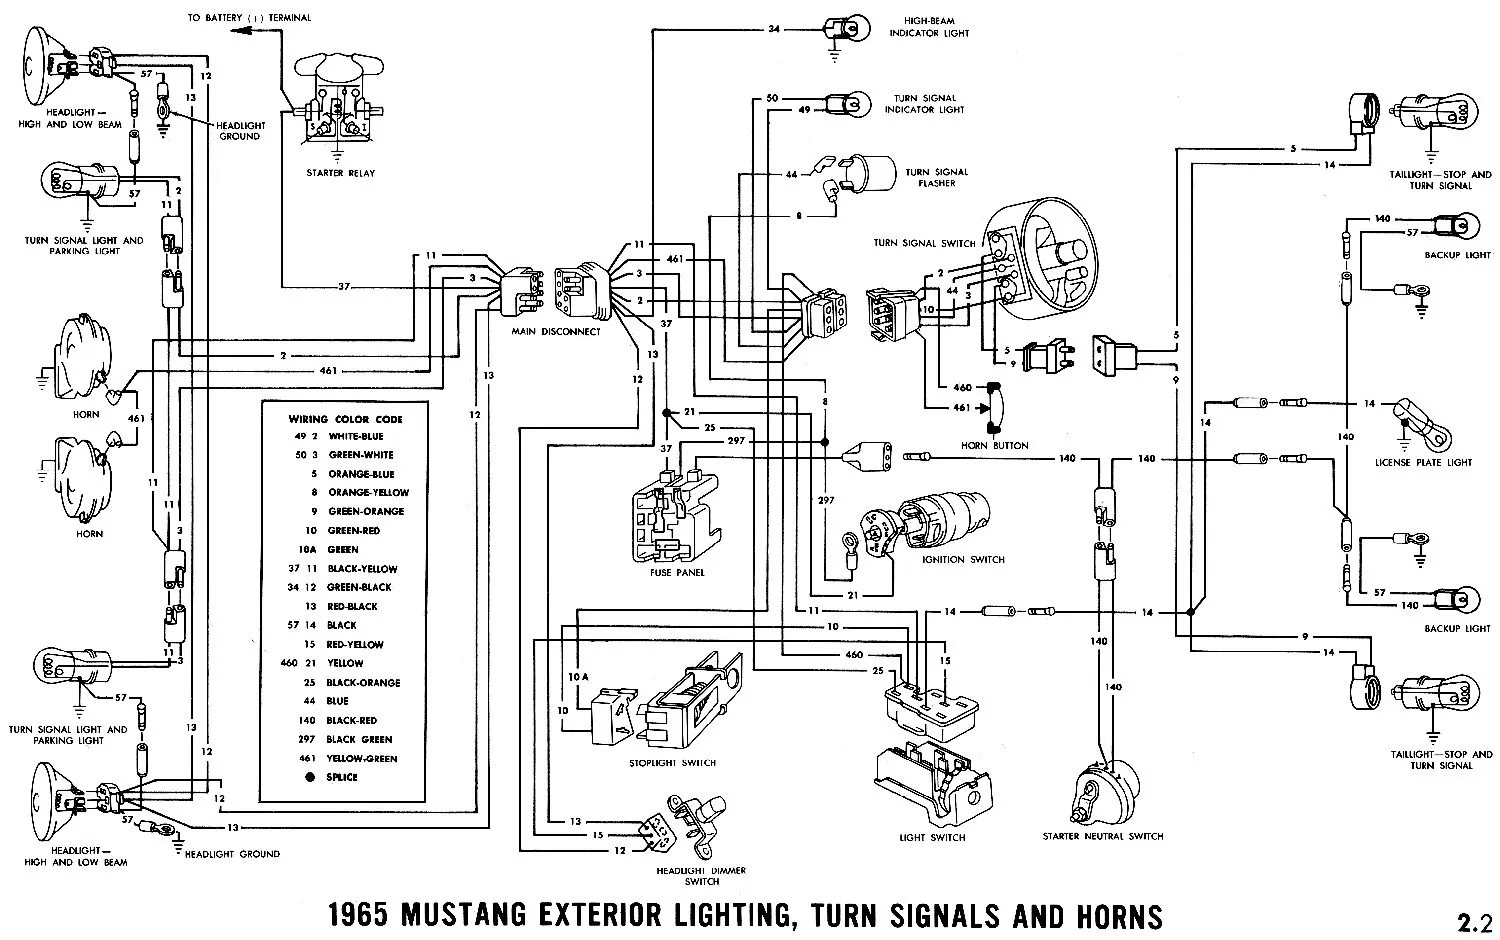 hight resolution of 1965 mustang wiring diagrams average joe restoration 89 mustang ignition wiring diagram mustang ignition diagram